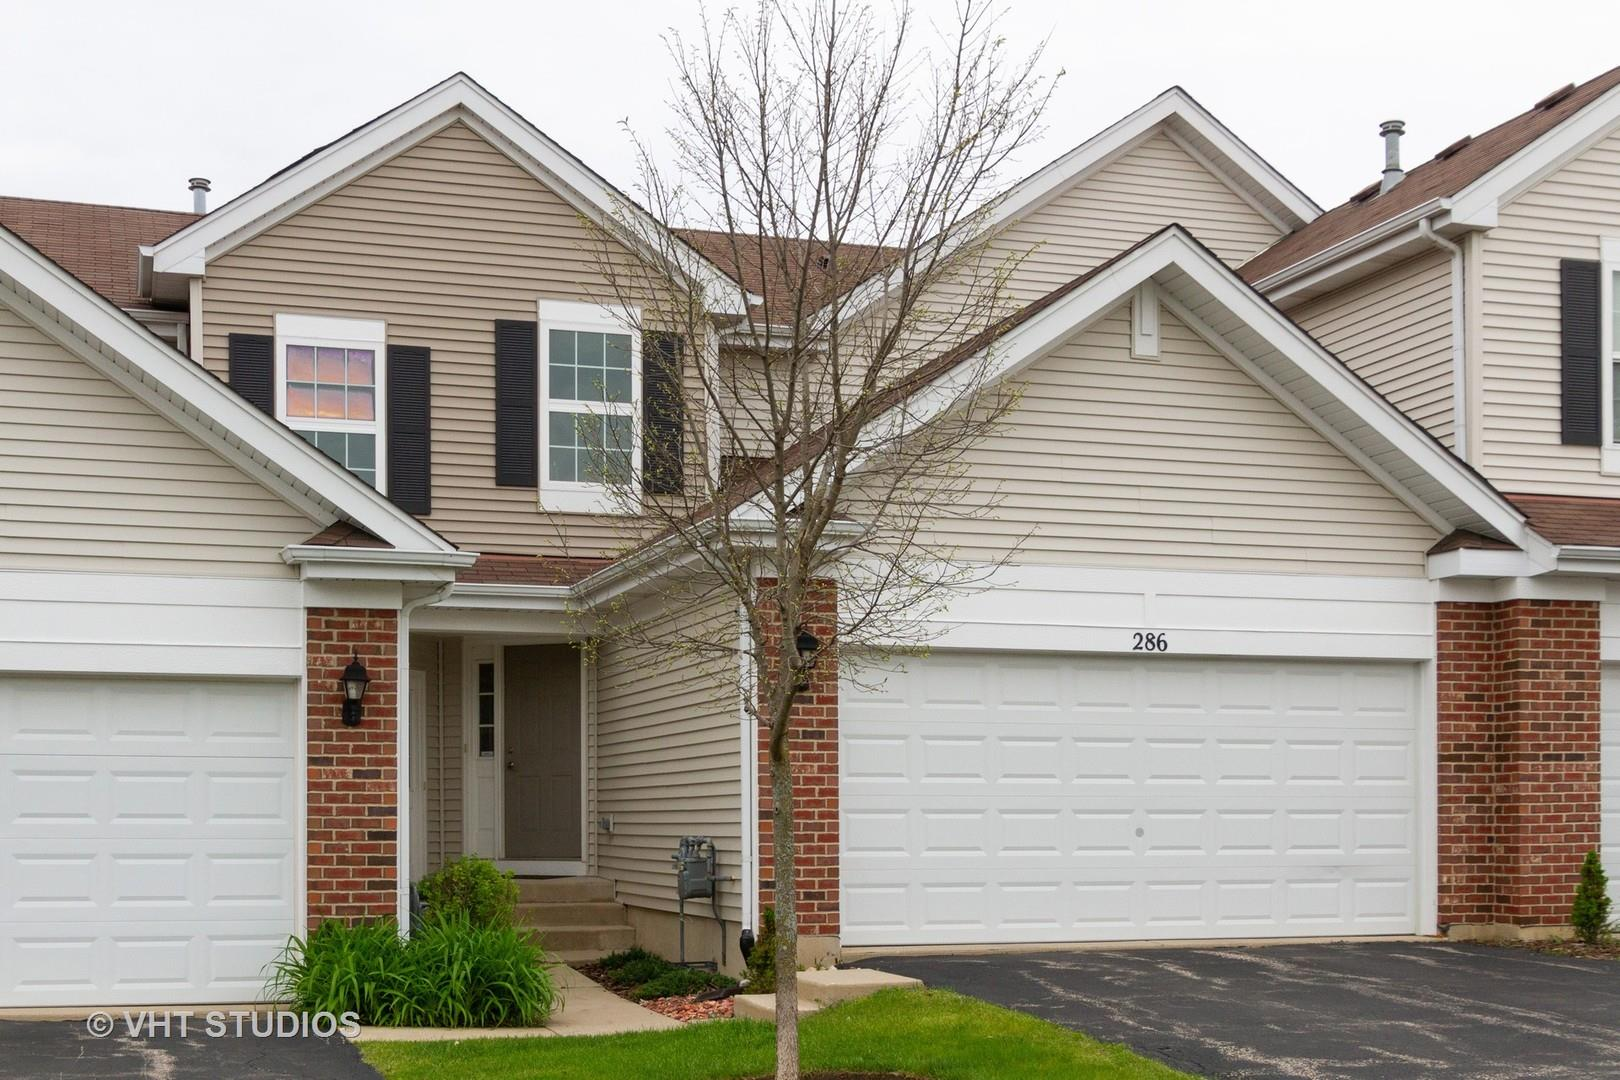 286 Macintosh Avenue, Woodstock, IL 60098 - #: 10468991